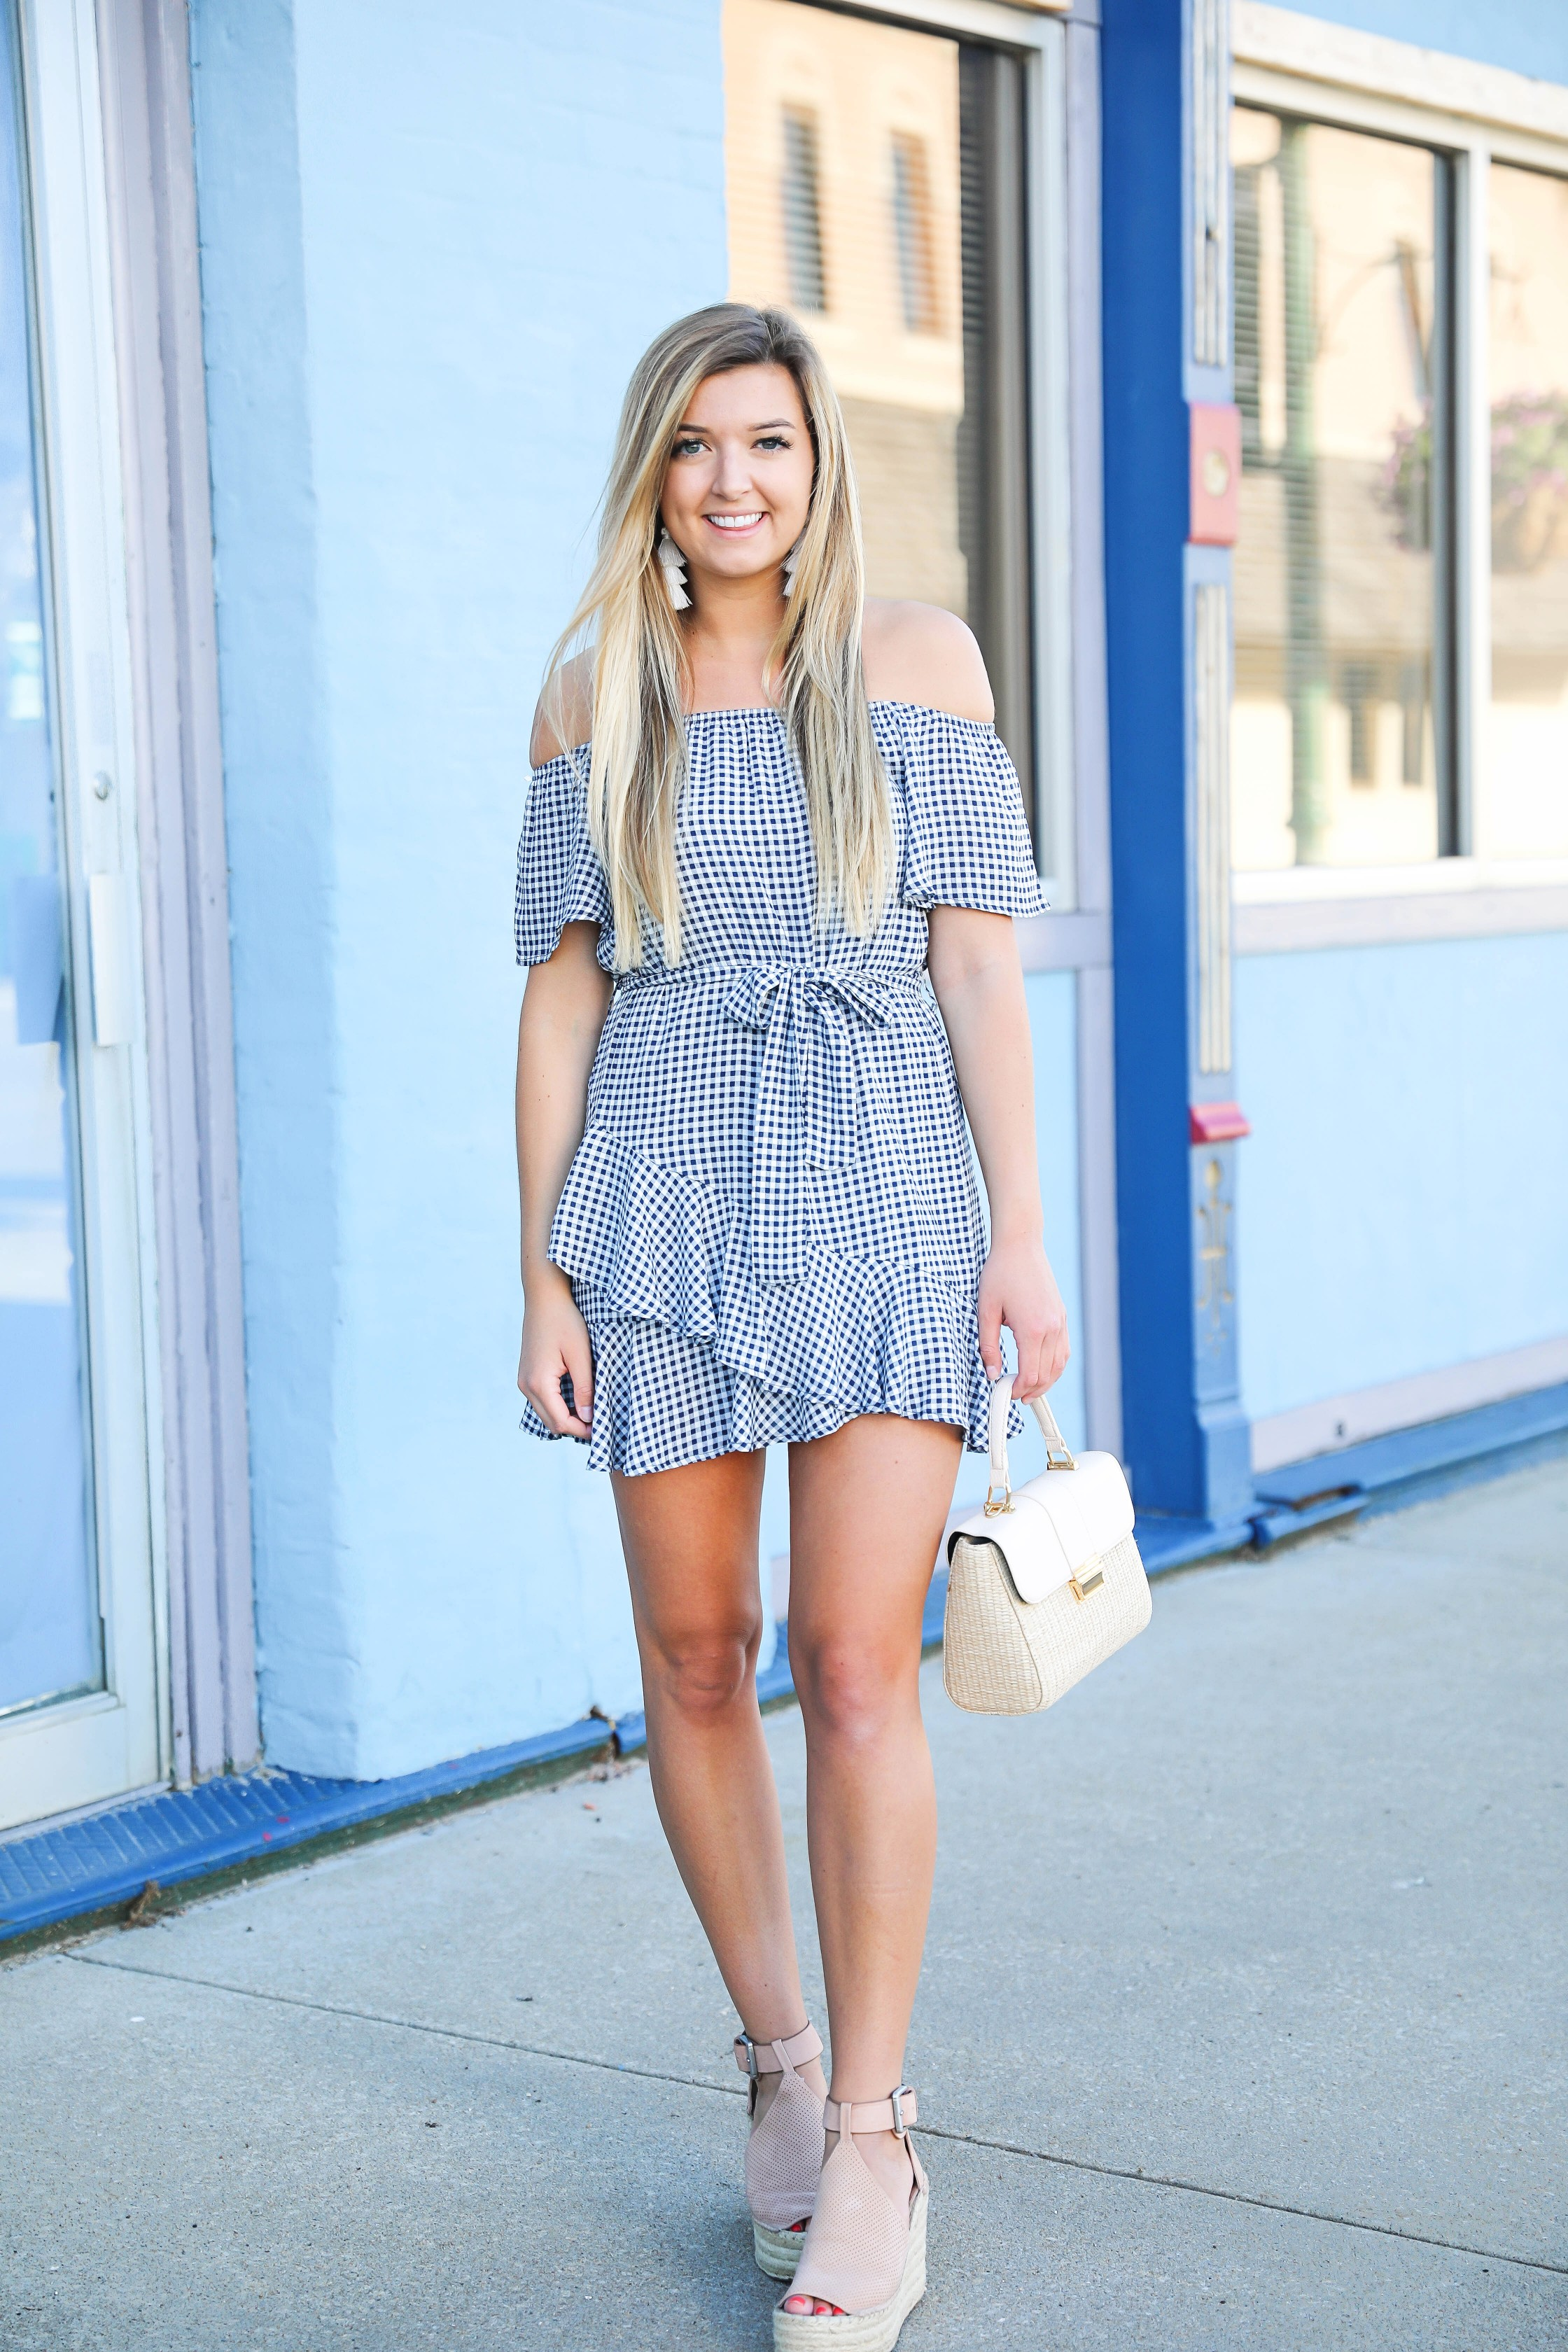 Gingham dress for summer! I love this dress from showpo, the tied waist is so flattering plus the off the shoulder look is so in right now! Get the dress details on fashion blog daily dose of charm by lauren lindmark